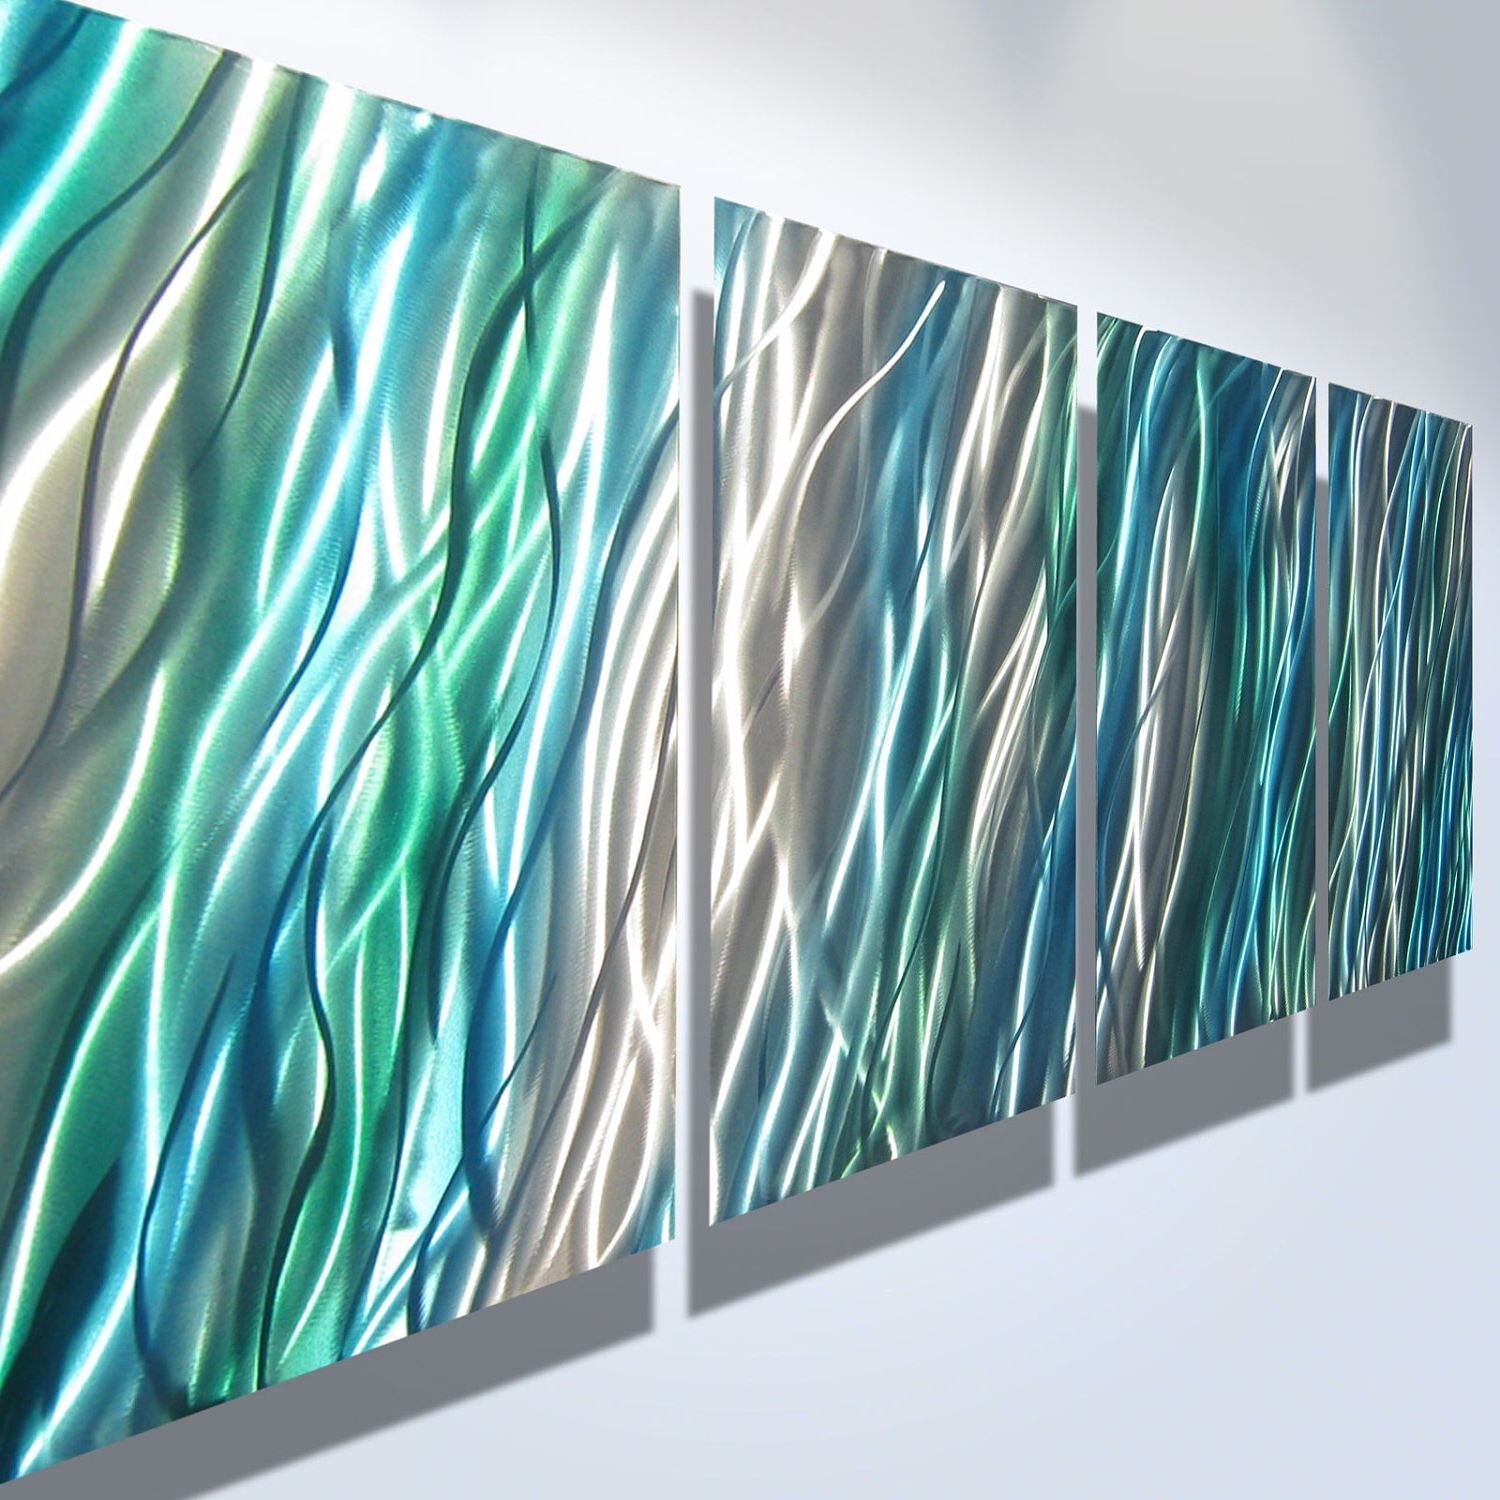 Teal And Green Wall Art Intended For Preferred Metal Wall Art Decor Abstract Contemporary Modern Sculpture (Gallery 8 of 15)